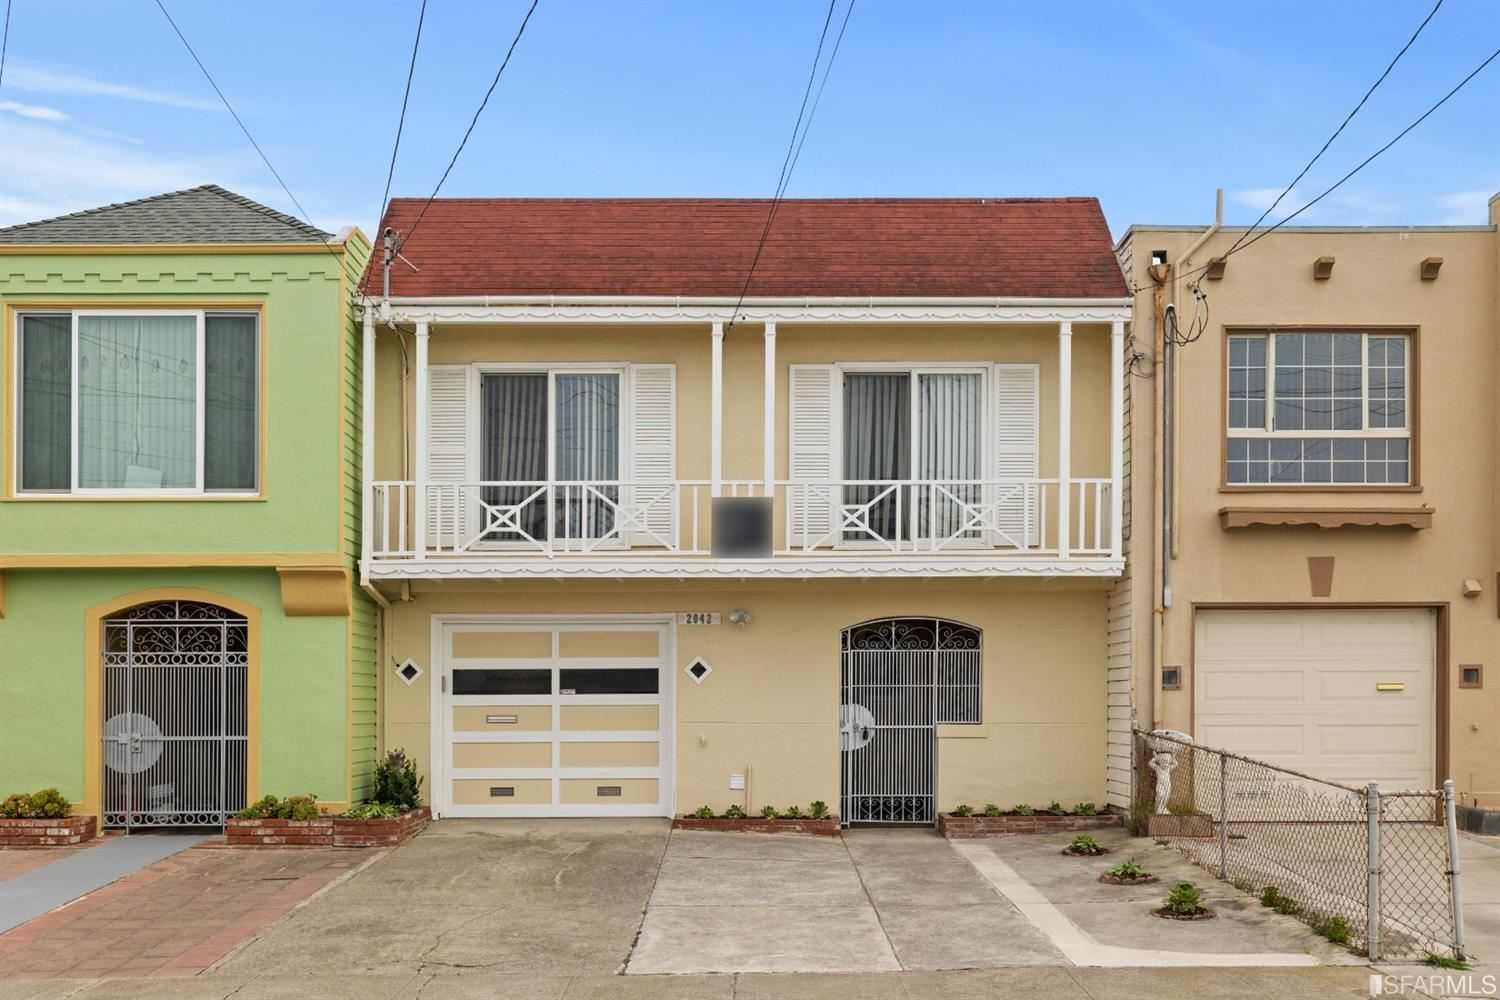 2042 45th Avenue, San Francisco, CA 94116 - #: 510987